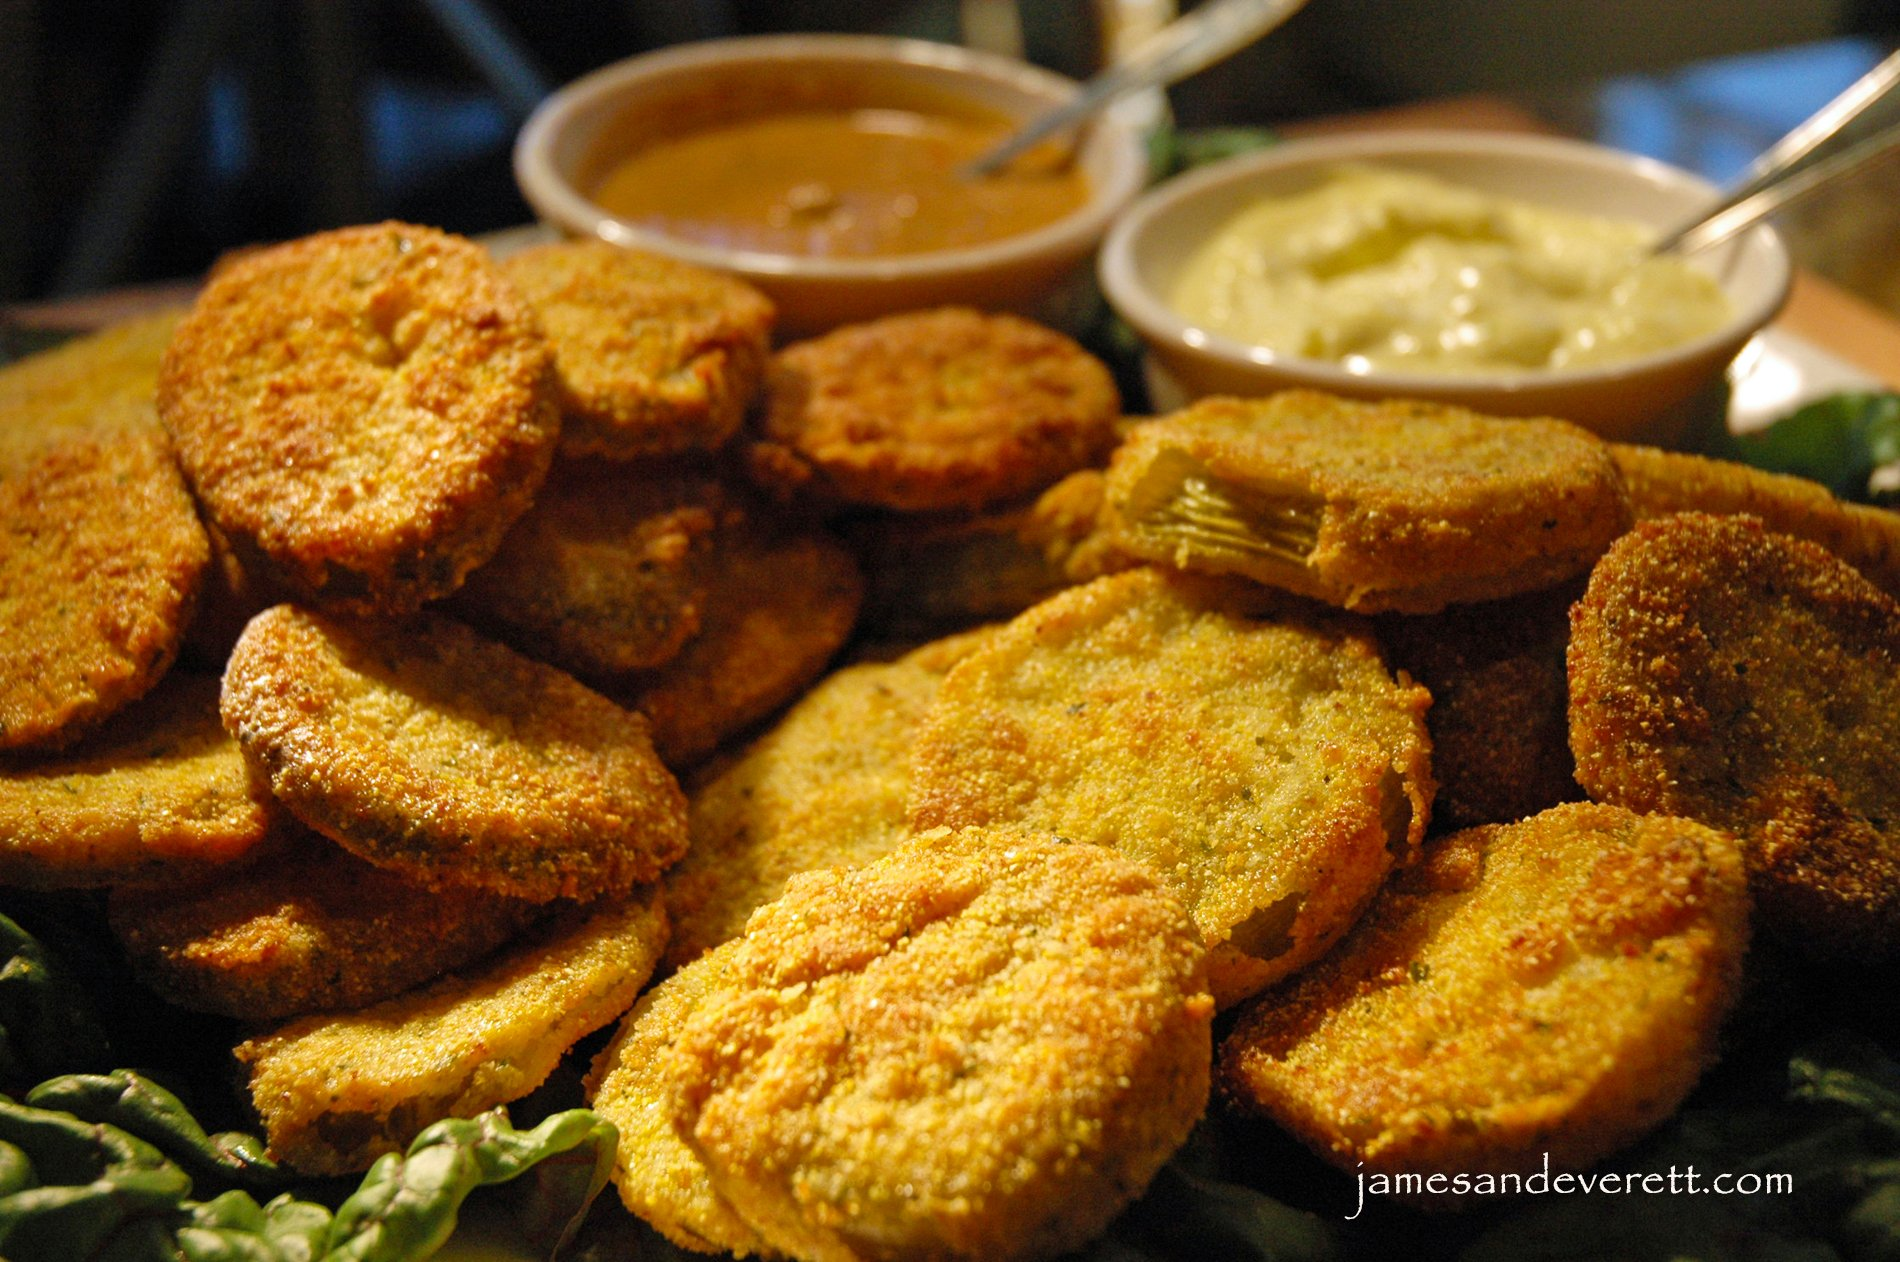 fried green tomatoes fried dill pickles james everett. Black Bedroom Furniture Sets. Home Design Ideas